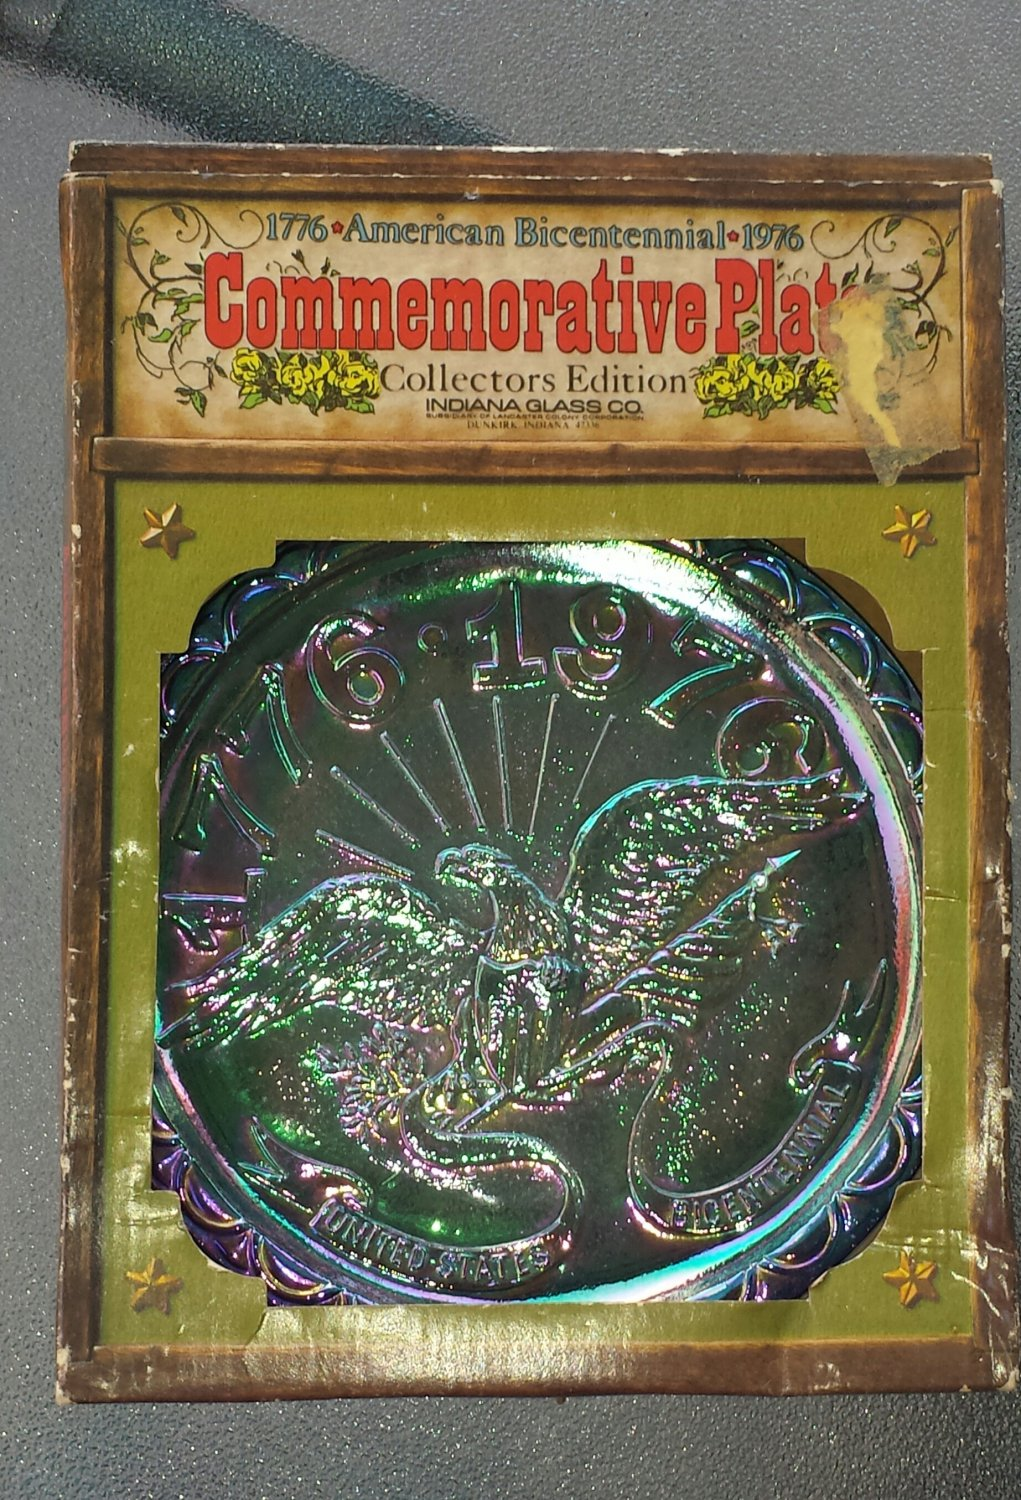 Vintage American Bicentennial Commemorative Glass Plate Collectors Edition Indiana Glass Co NIB